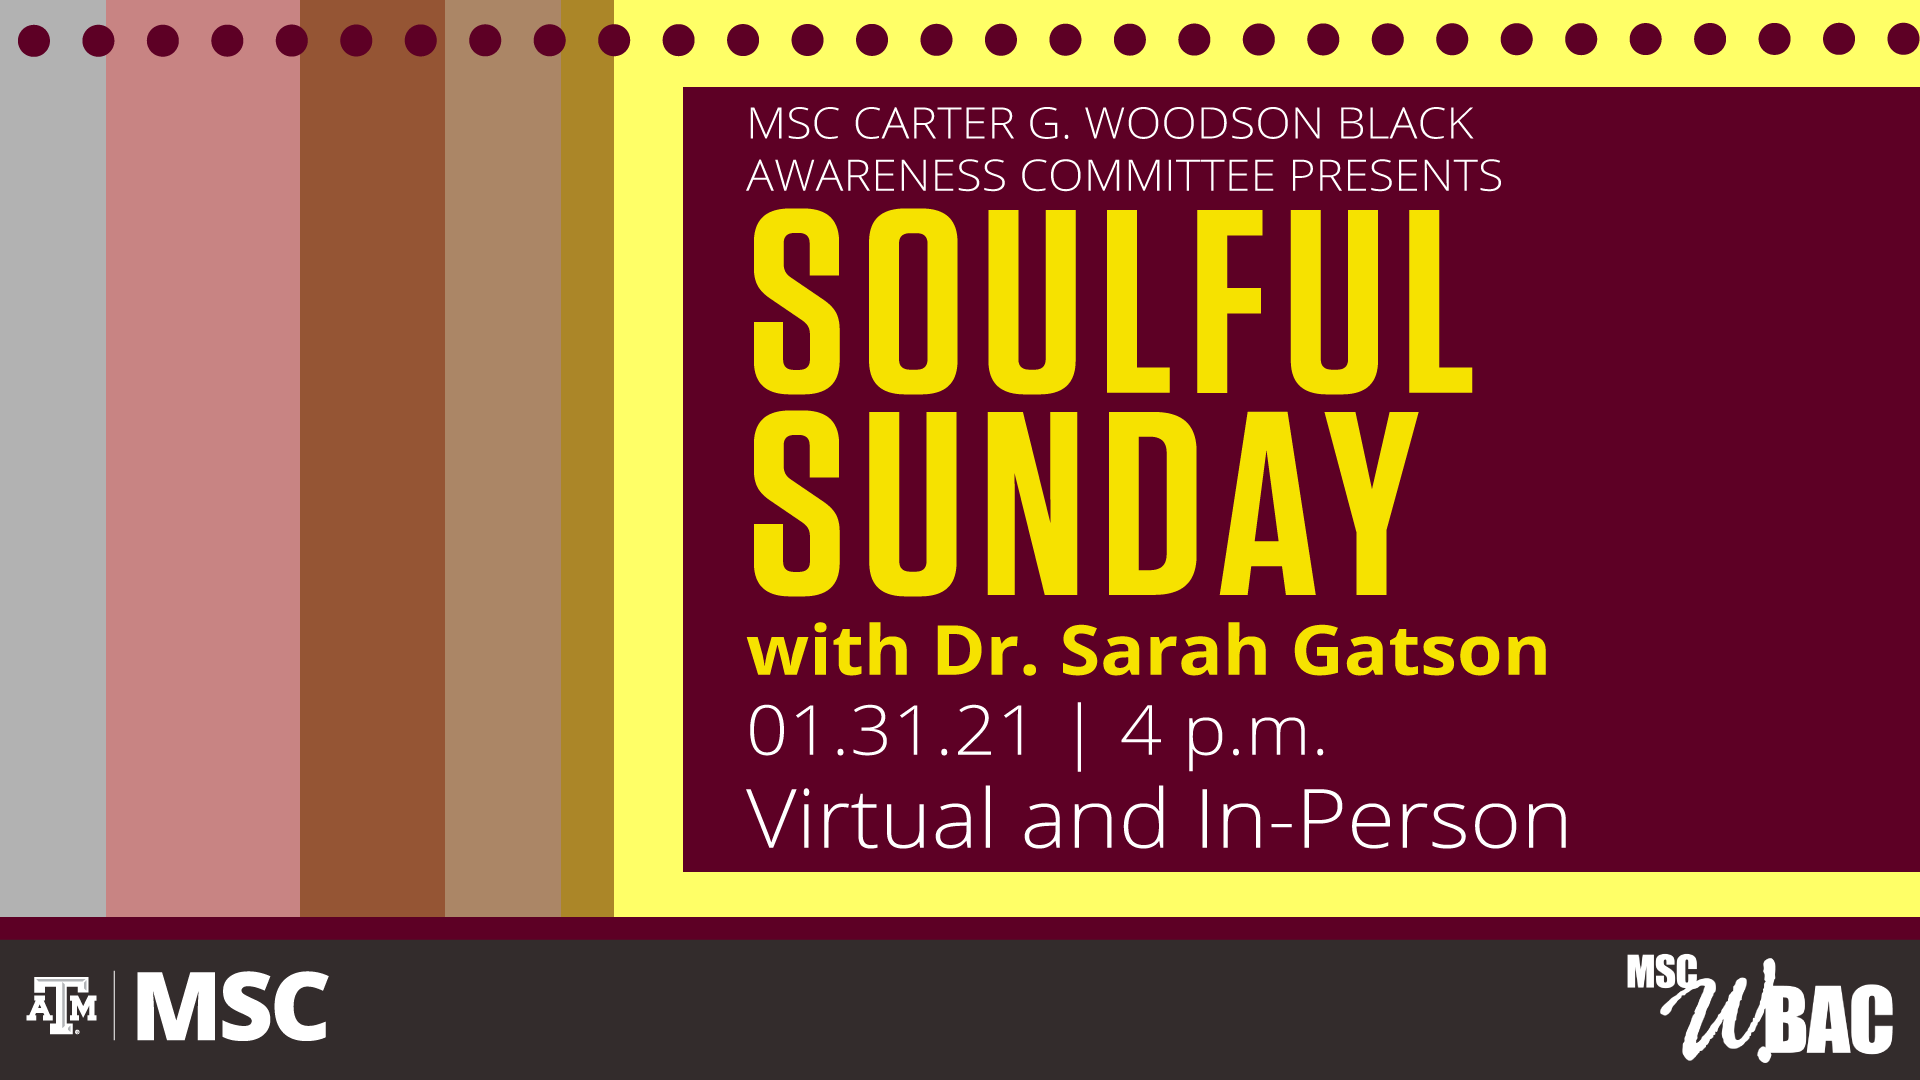 MSC WBAC presents Soulful Sunday with Dr. Sarah Gatson, January 31, 2021 at 4 p.m. Virtual and In-Person